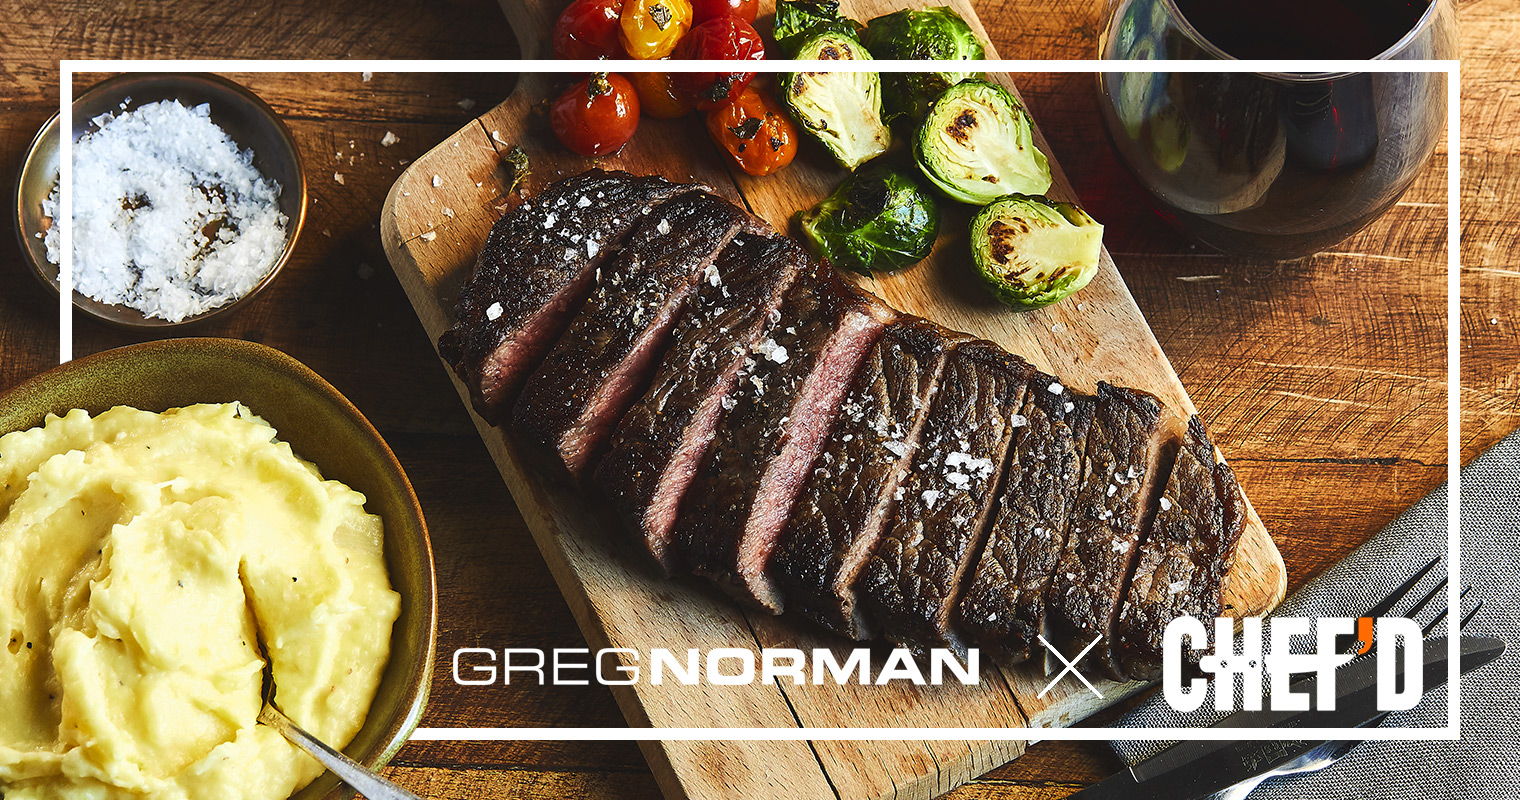 Greg Norman, Chef'd'